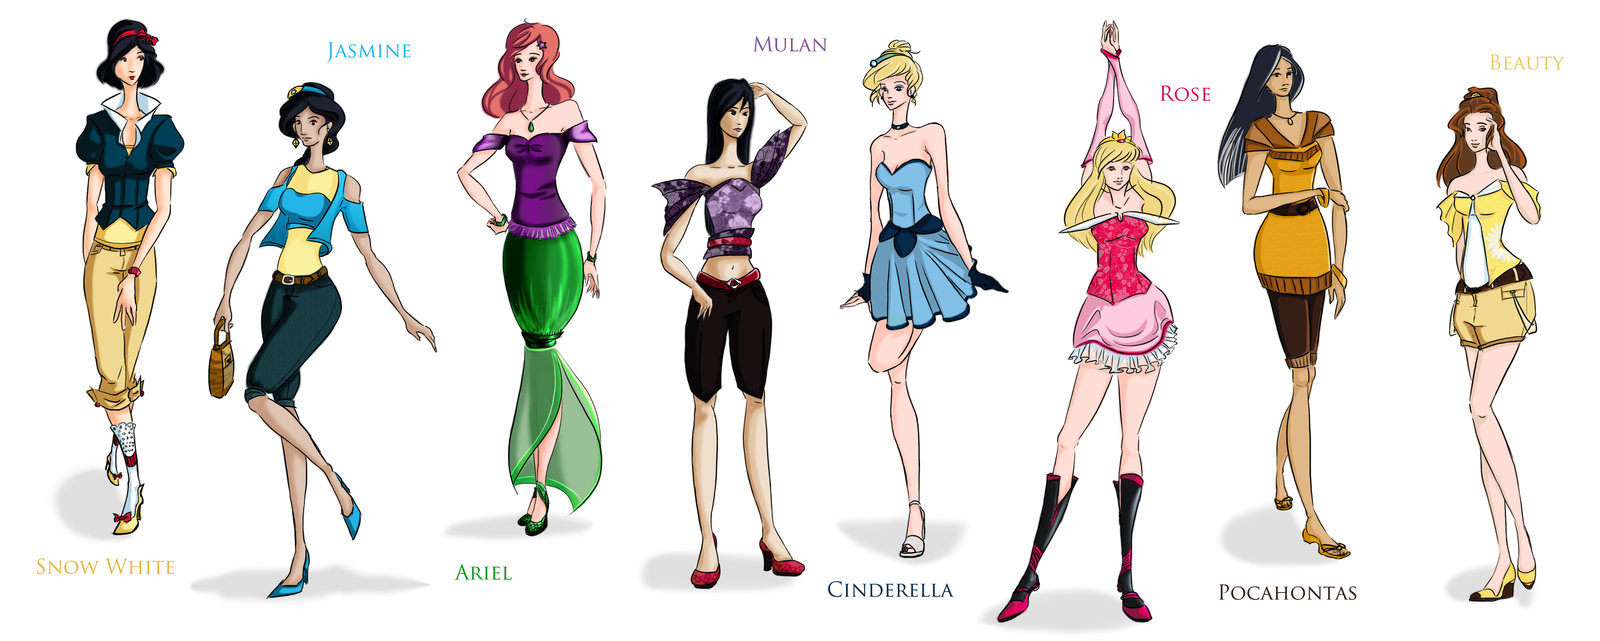 Disney Princesses full free